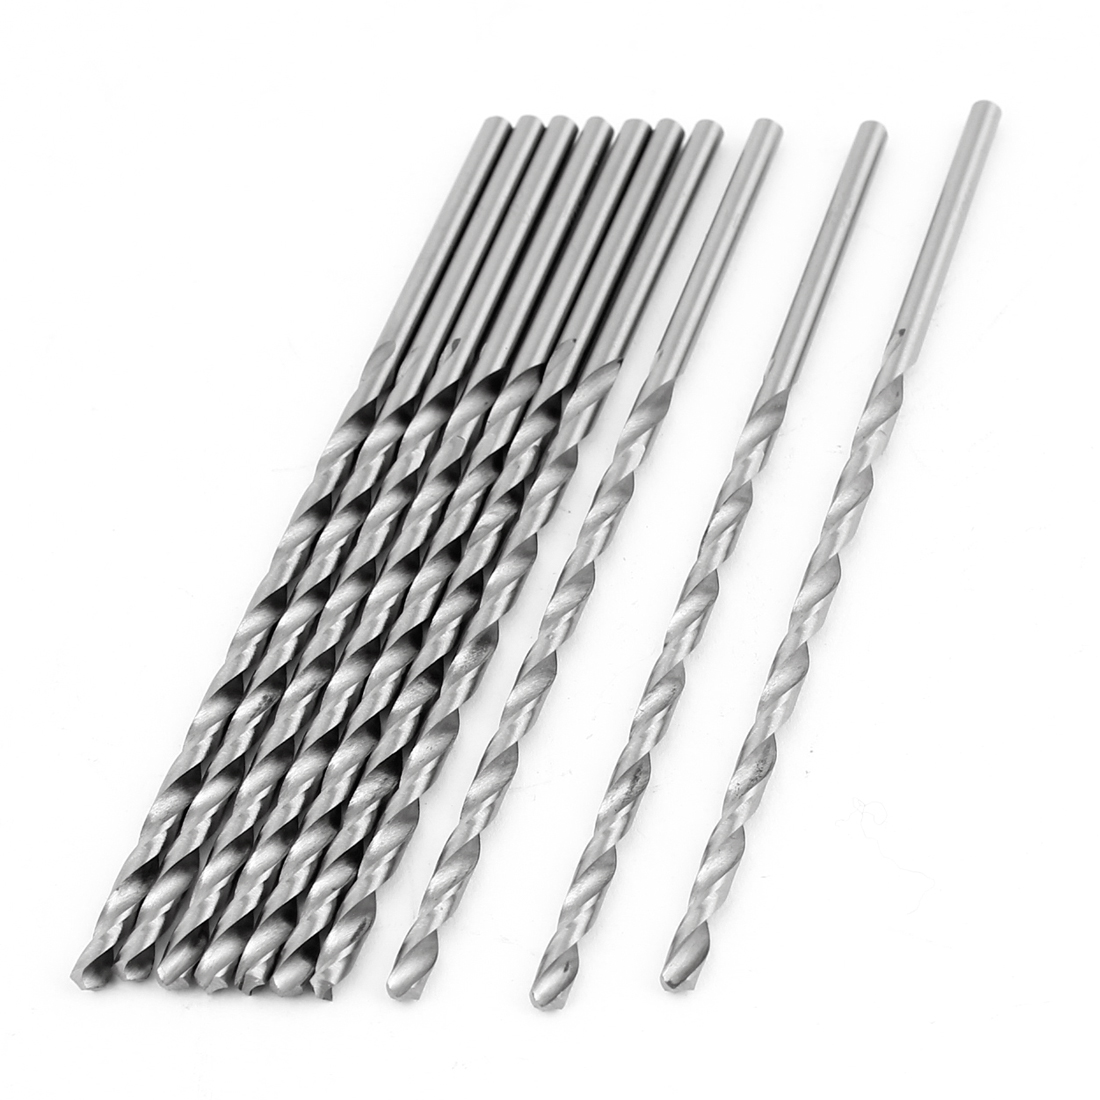 10PCS Split Point Straight Shank Fully Ground Spiral Twist Drill Bits 3.0mm Dia